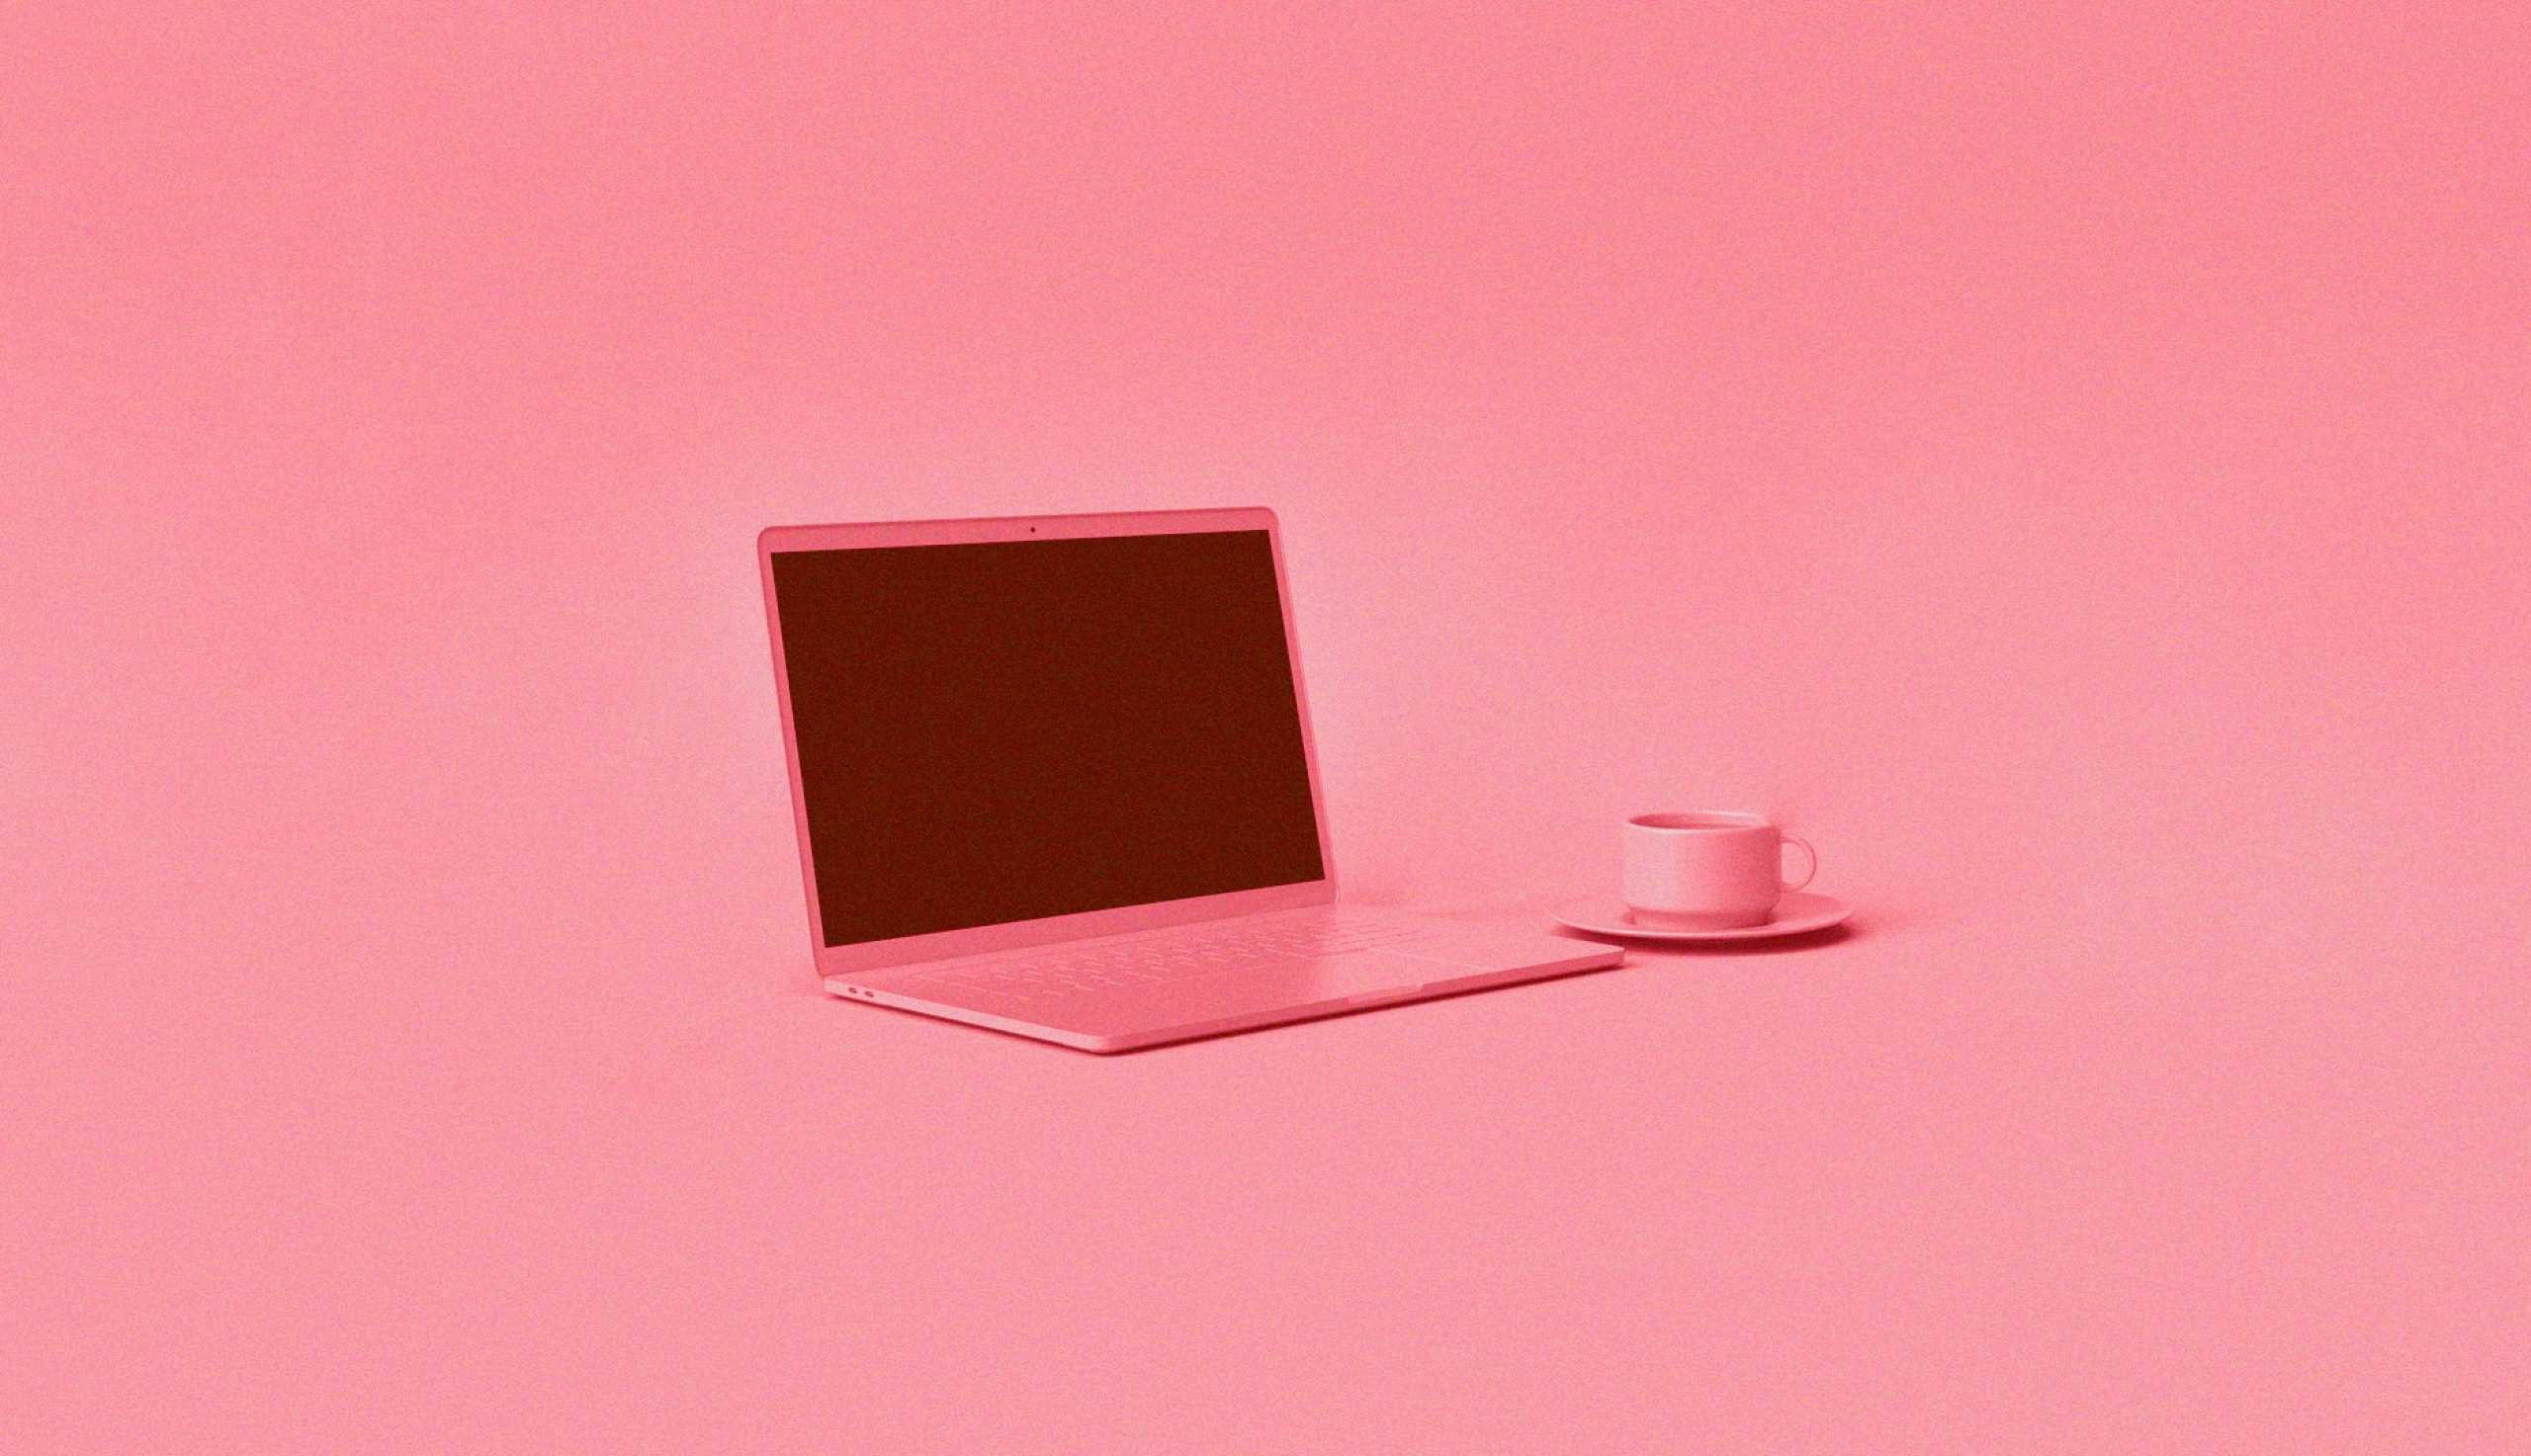 computer on pink background